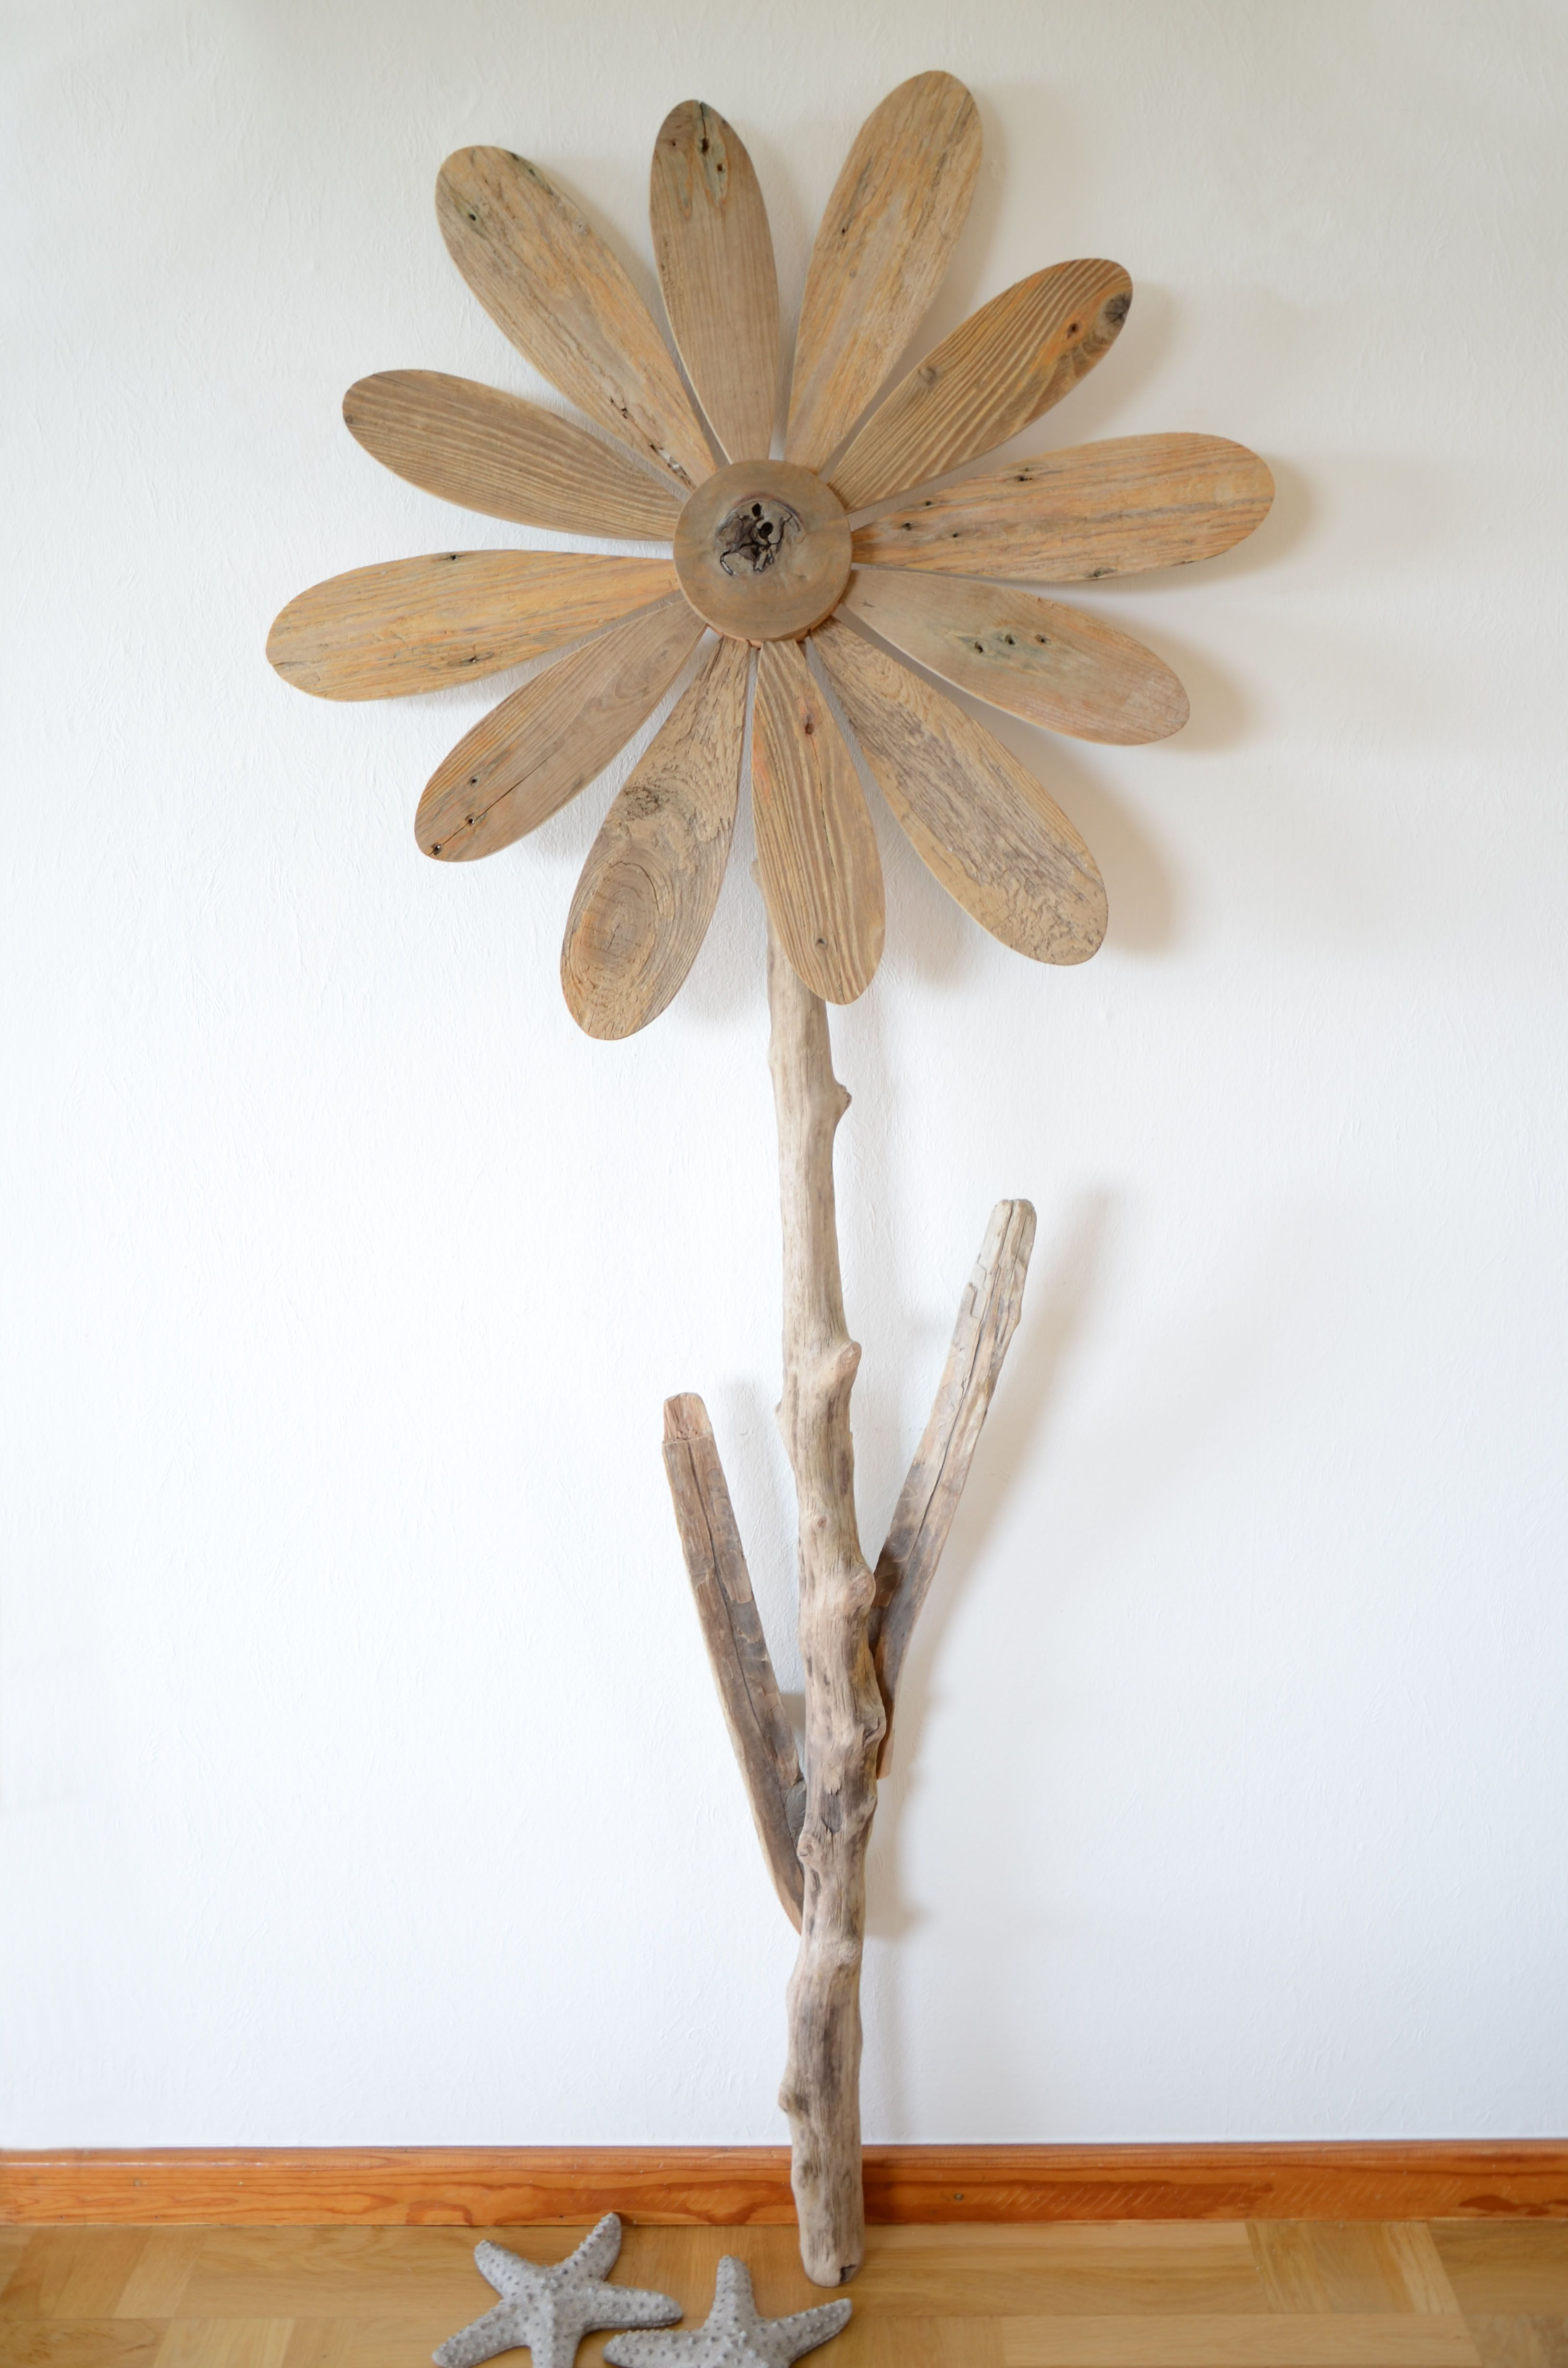 Wanddekoration Treibholz Wanddekoration Treibholz Blume Fortuna Wall Decoration Driftwood